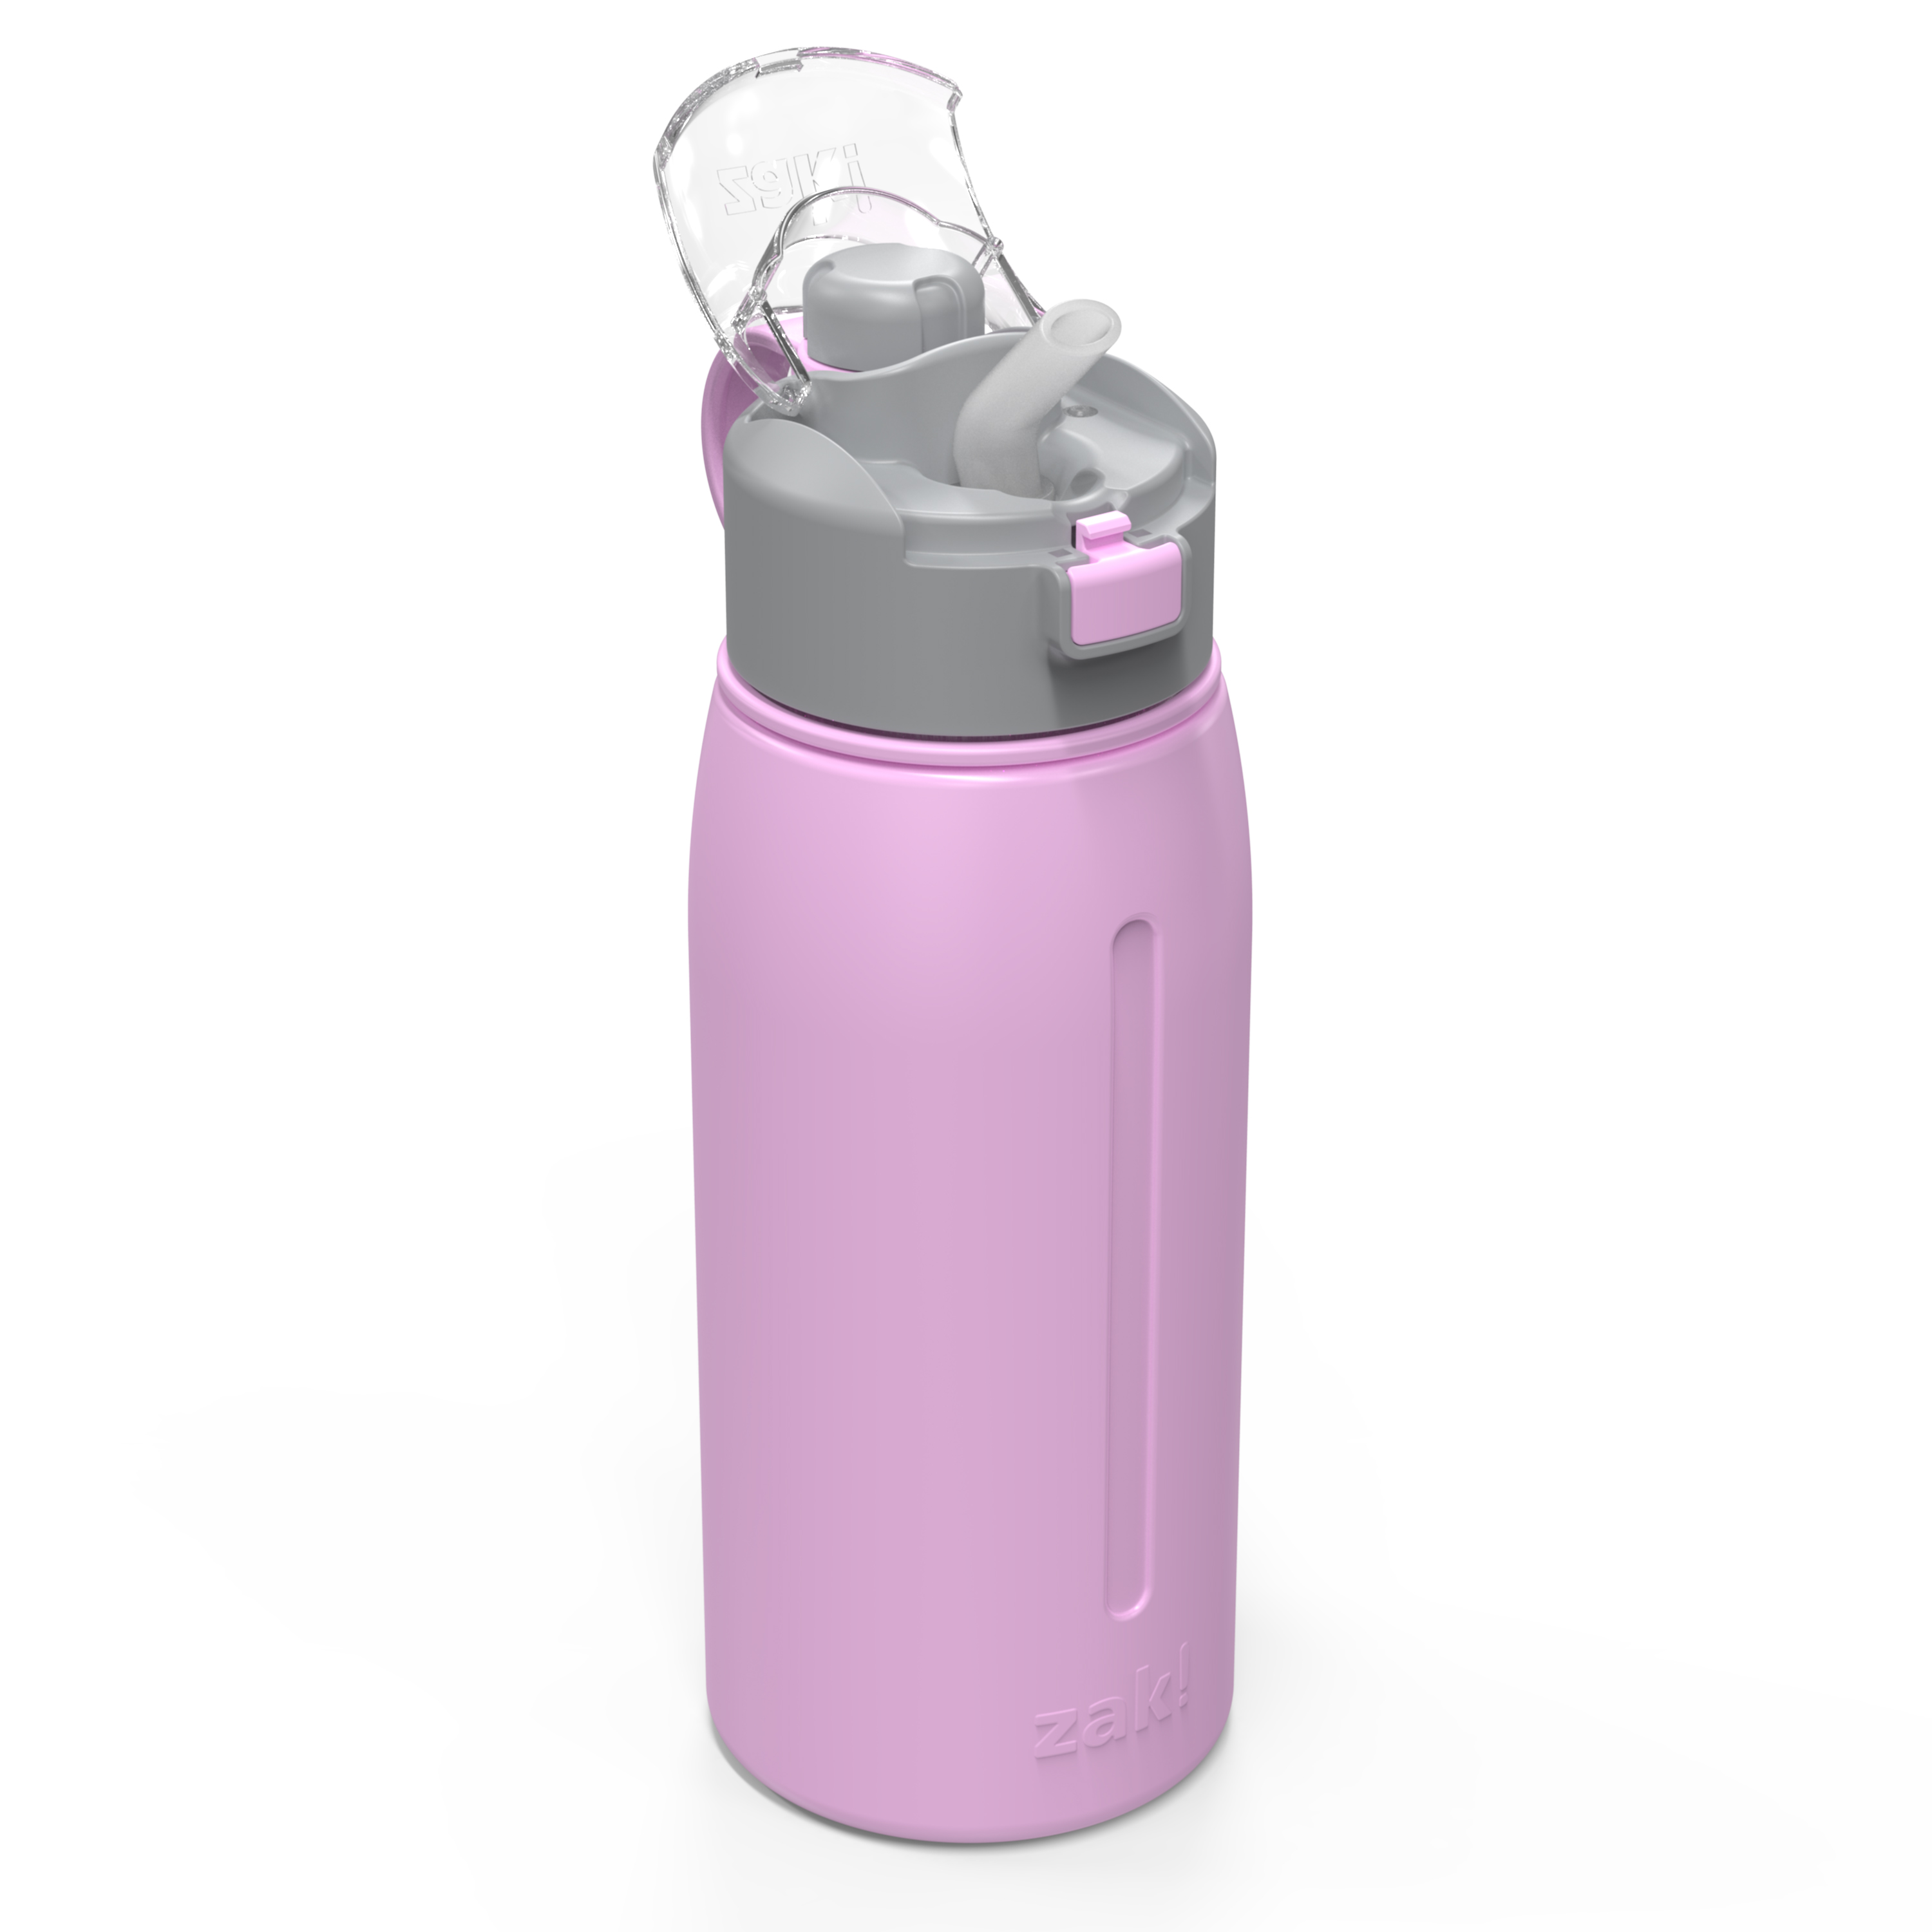 Genesis 24 ounce Vacuum Insulated Stainless Steel Tumbler, Lilac slideshow image 2